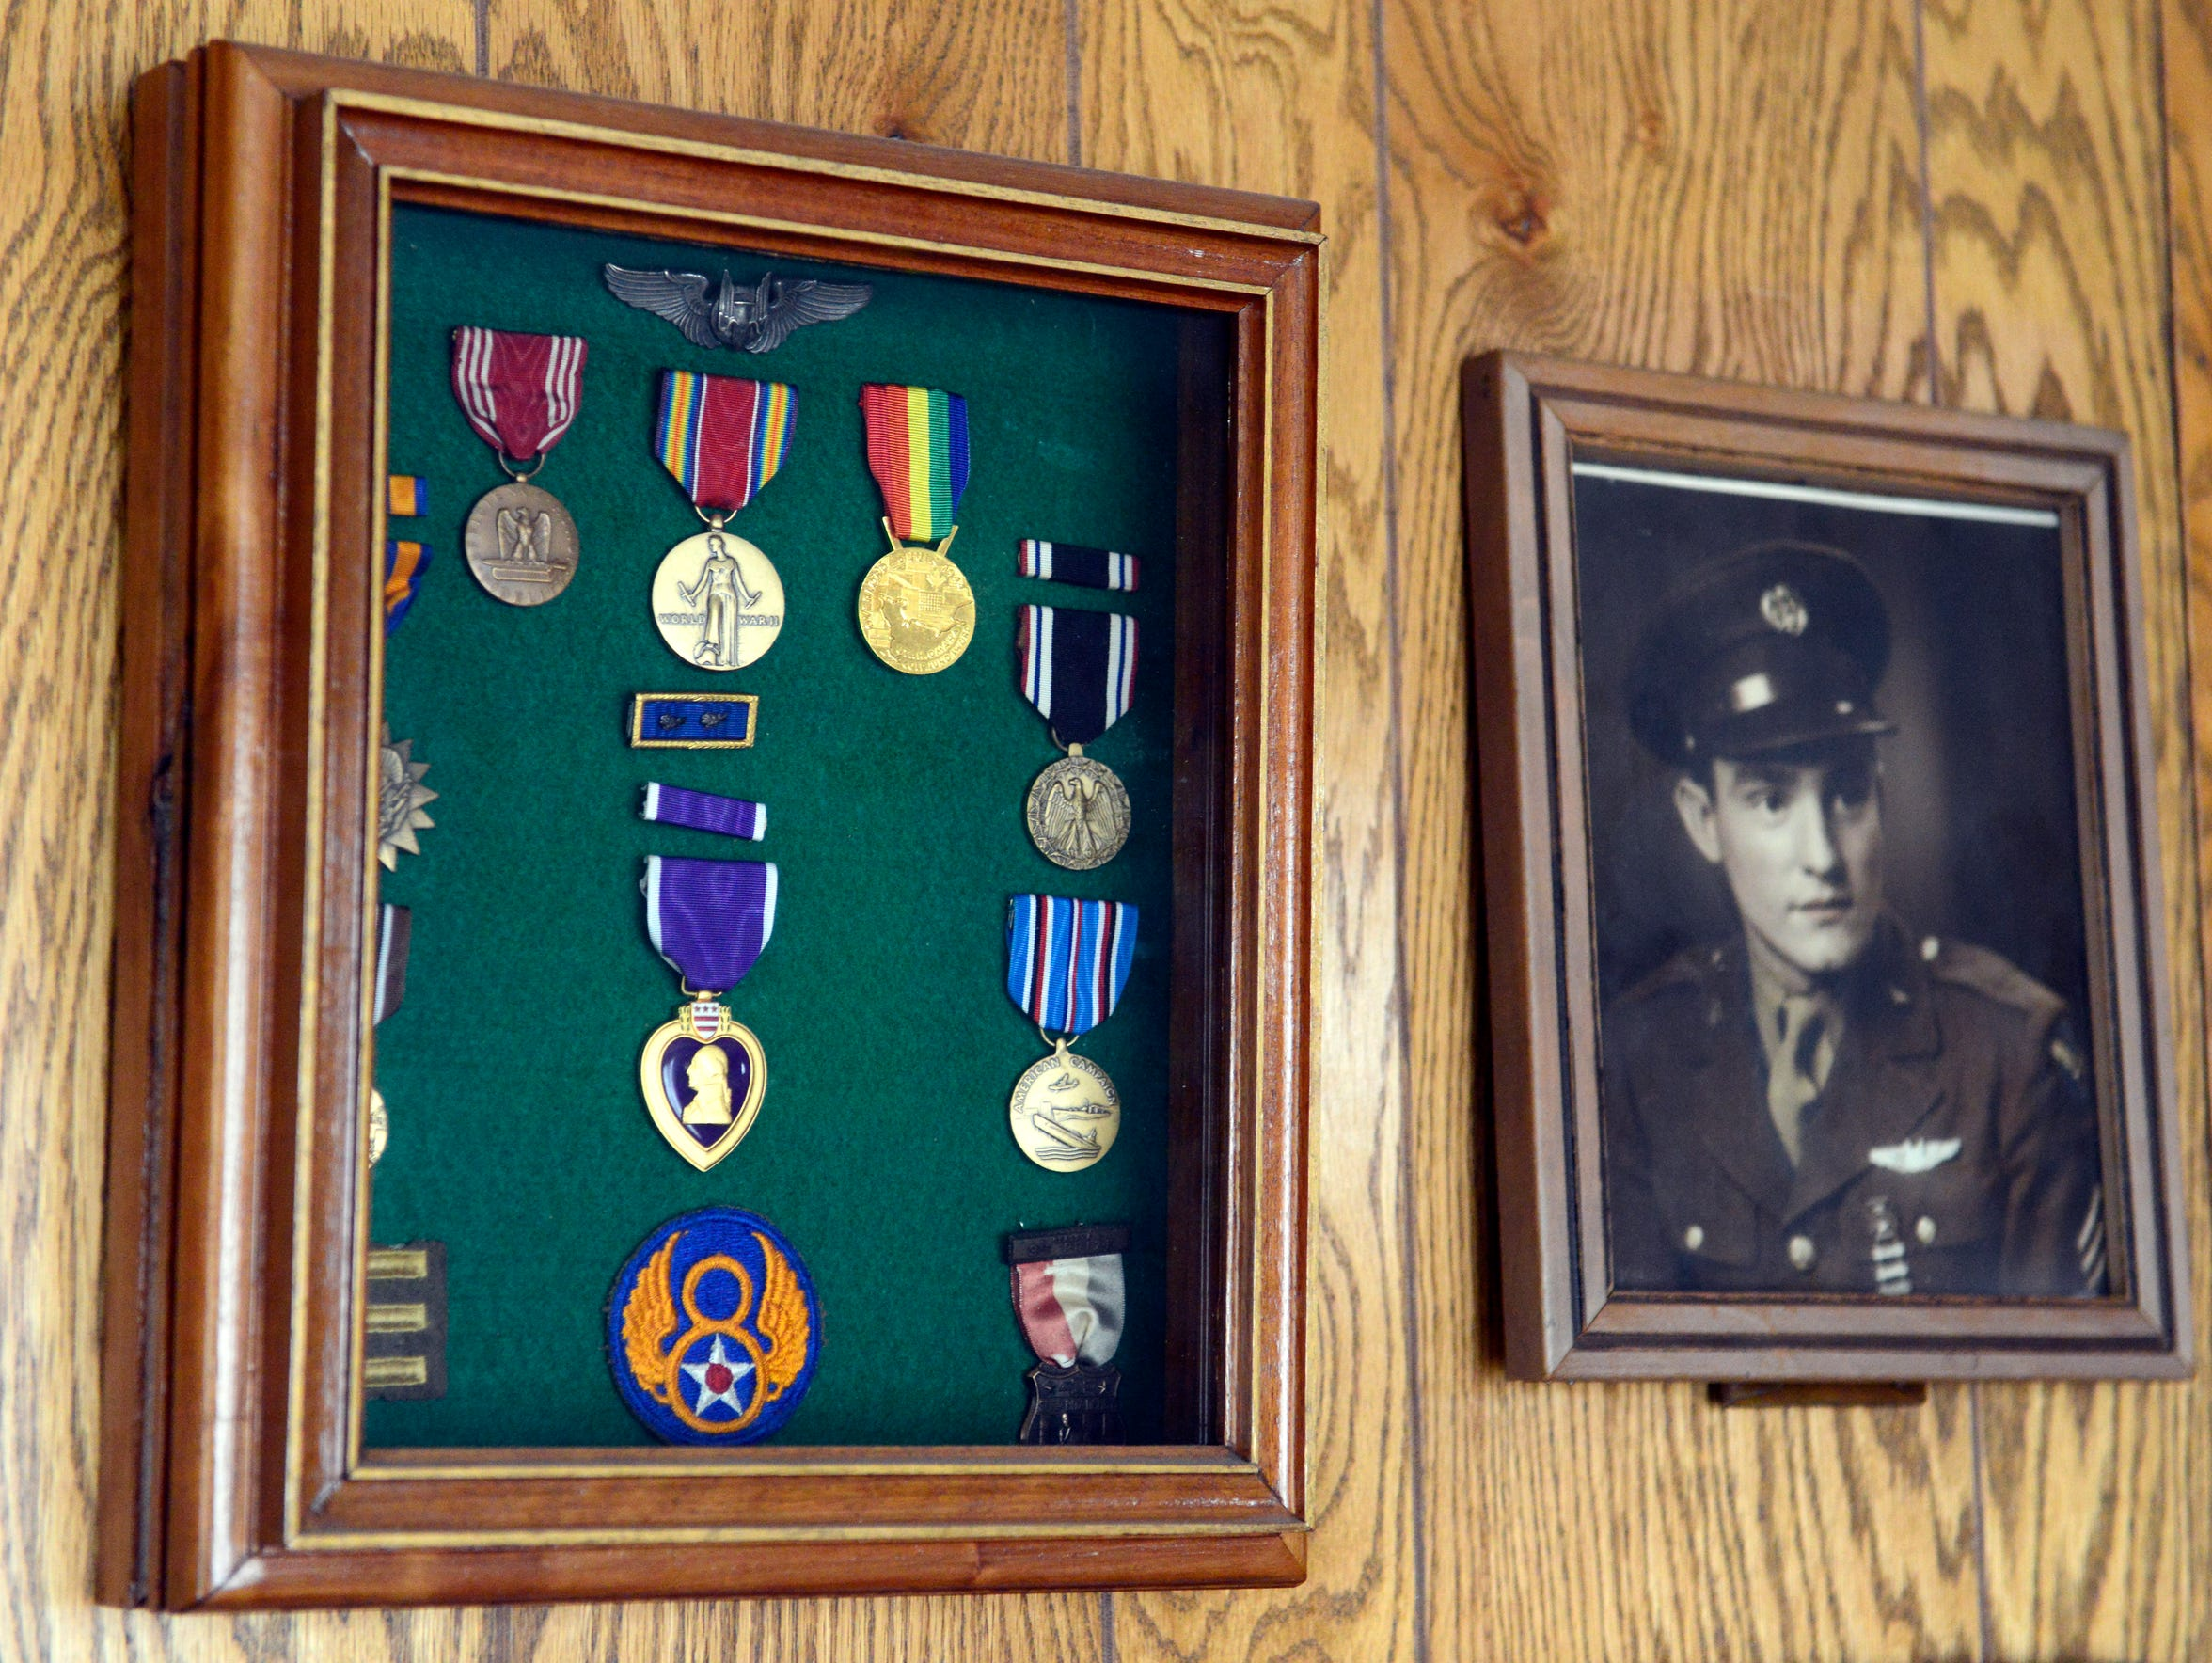 Charles Holcomb displays his metals in his home next